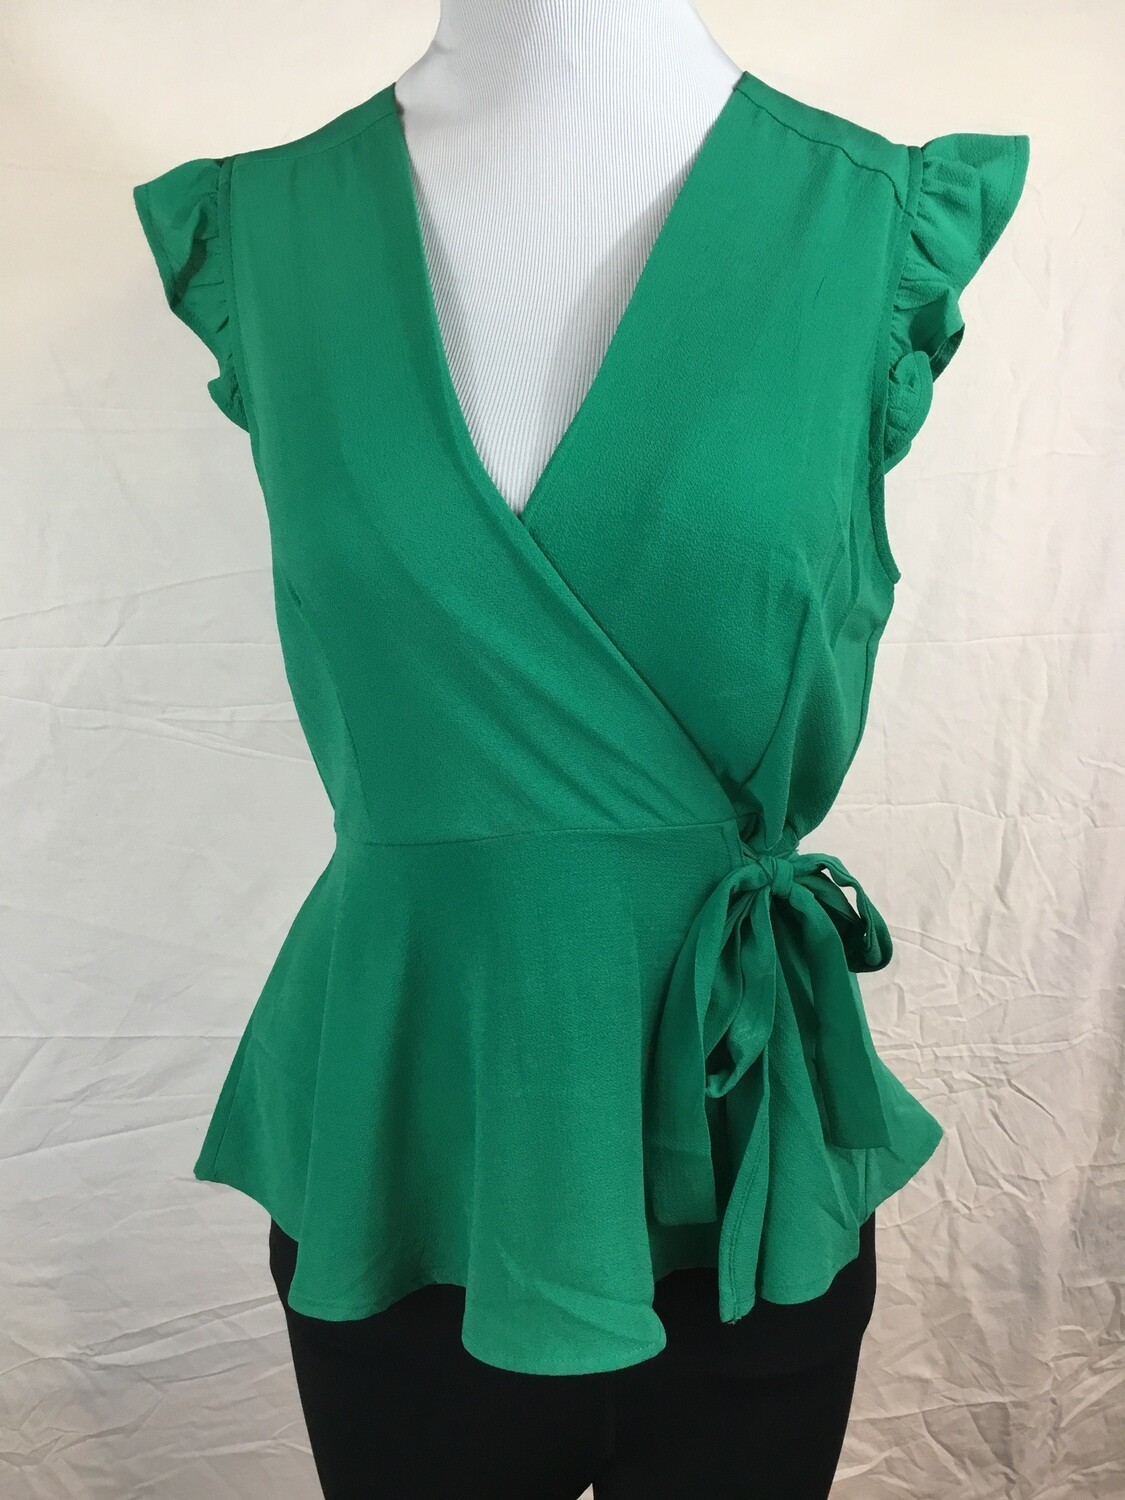 880 monteau green cross front ss wmns large 050420